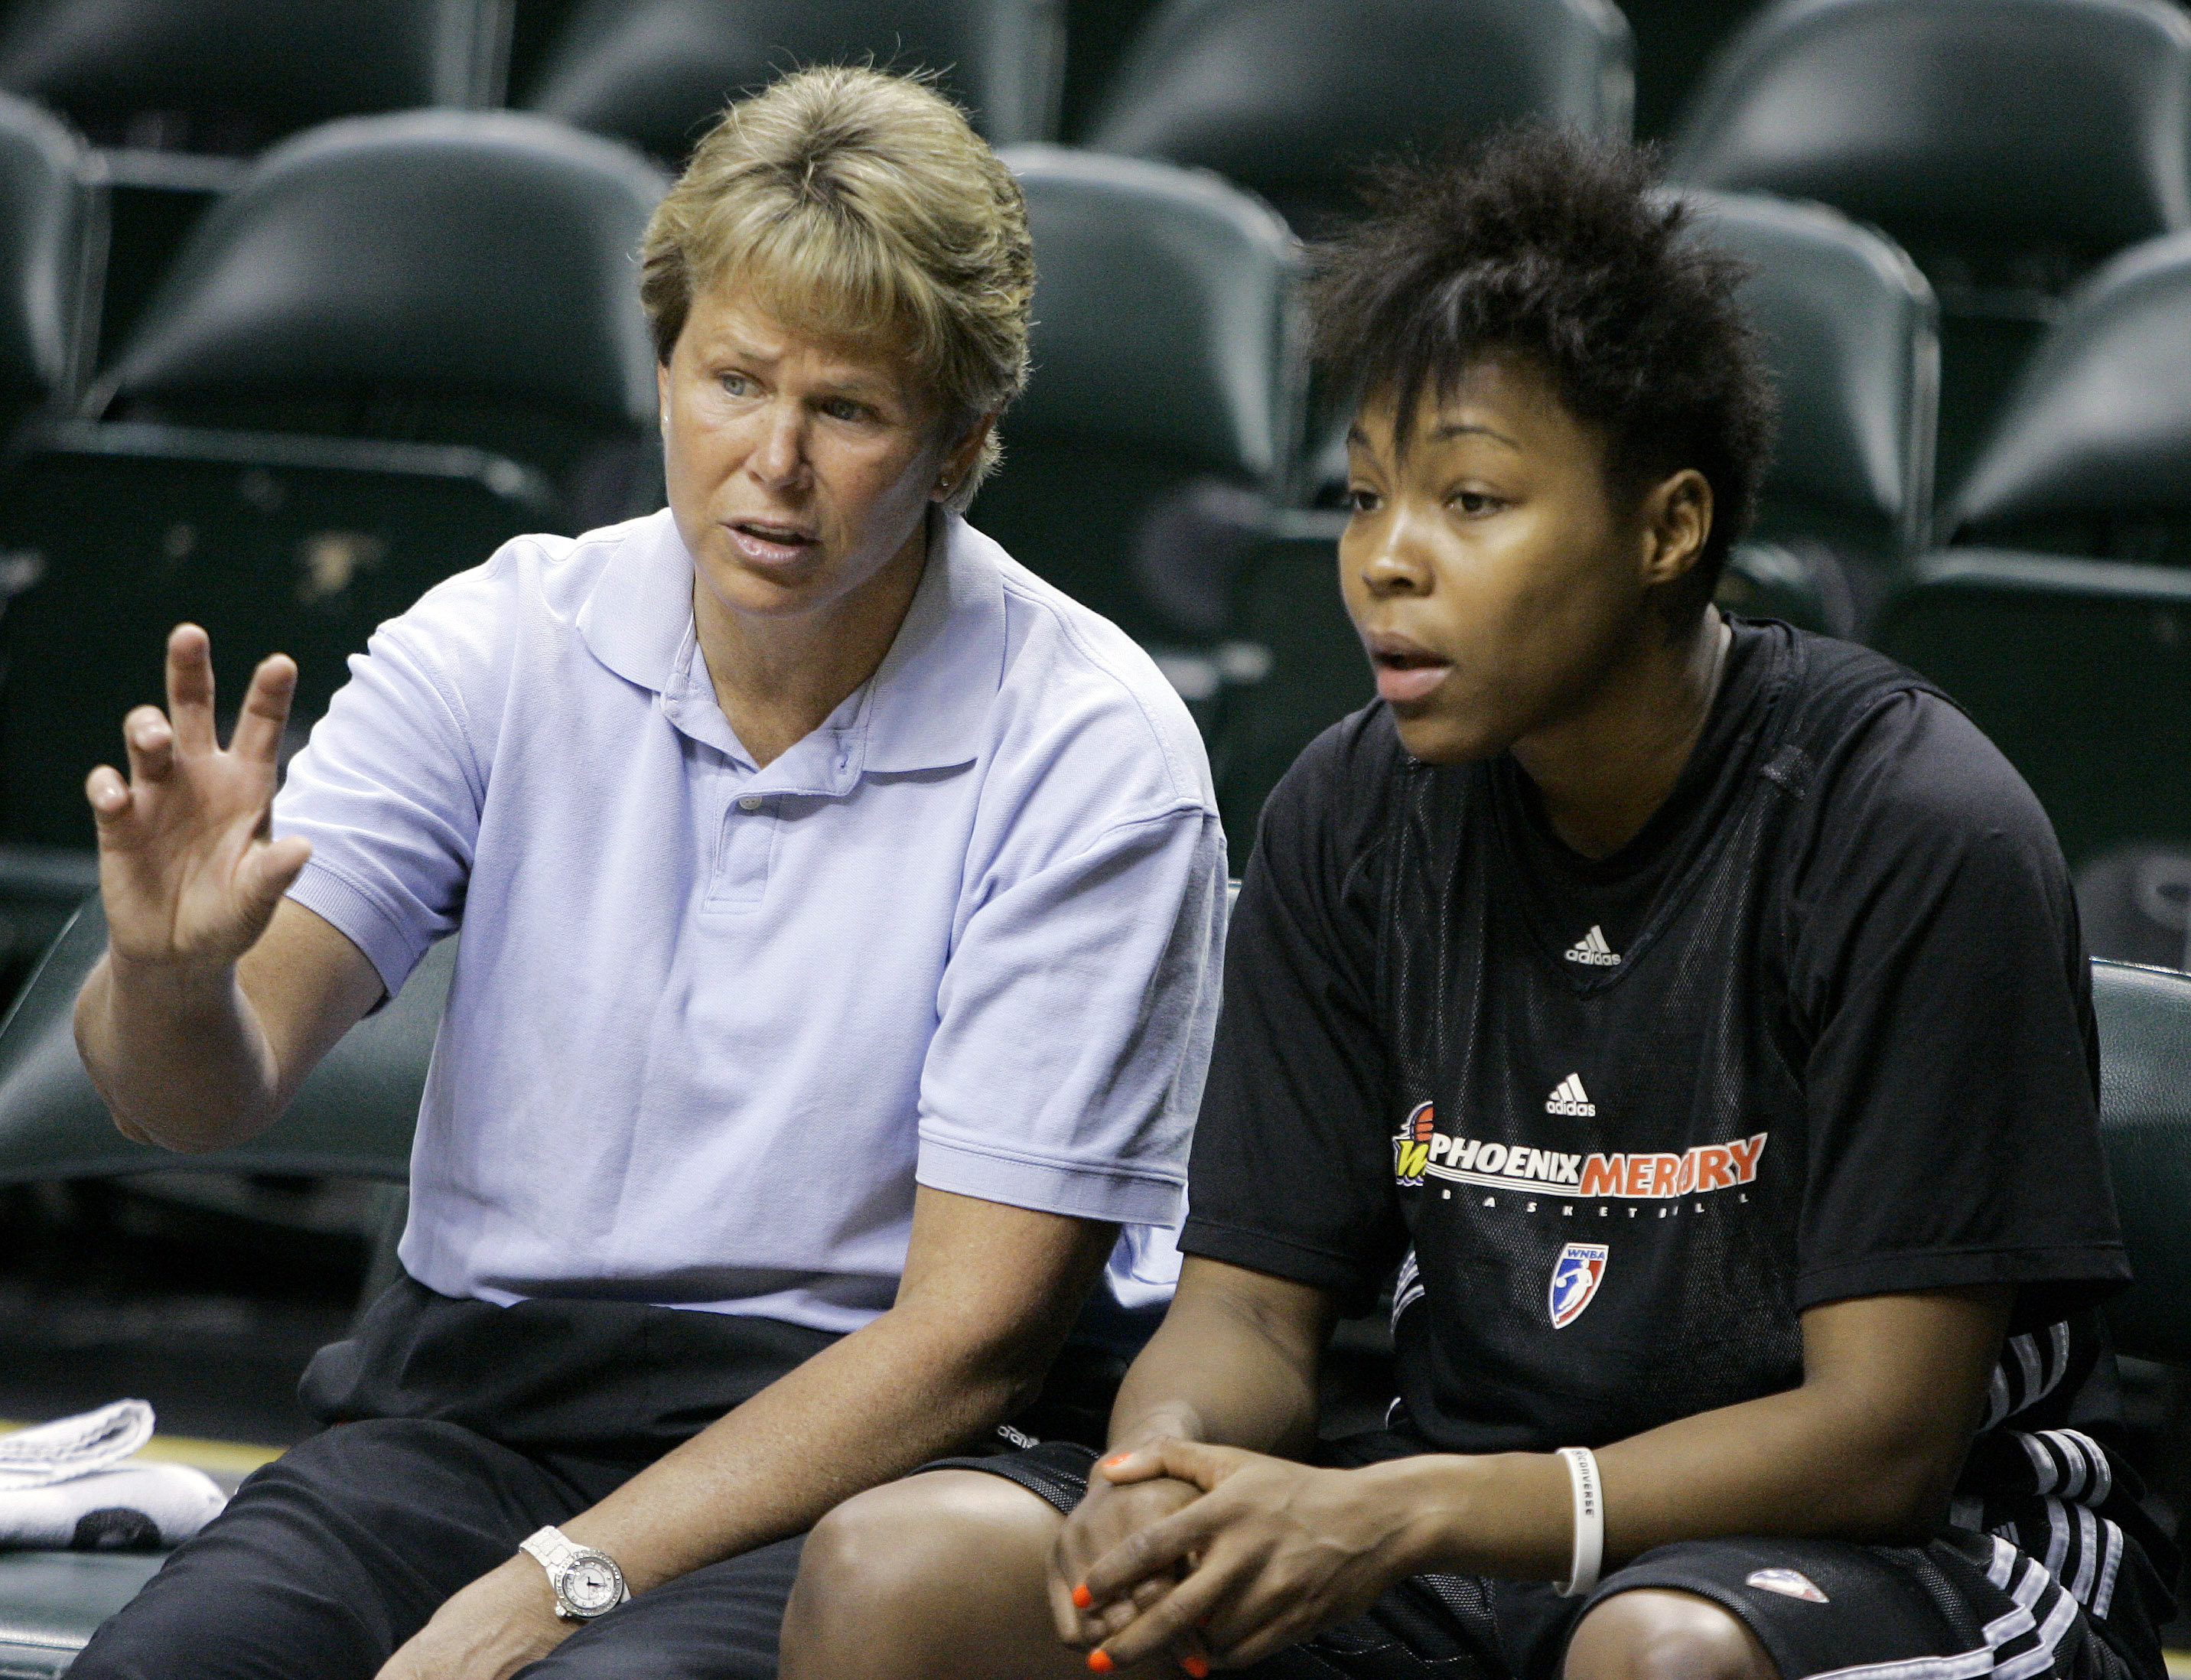 Phoenix Mercury general manager Ann Meyers Drysdale, left, talks with  forward Cappie Pondexter as they wait for the start of practice for the WNBA Finals in Indianapolis, Tuesday, Oct. 6, 2009. The Indiana Fever lead the series 2-1. Game 4 is scheduled f